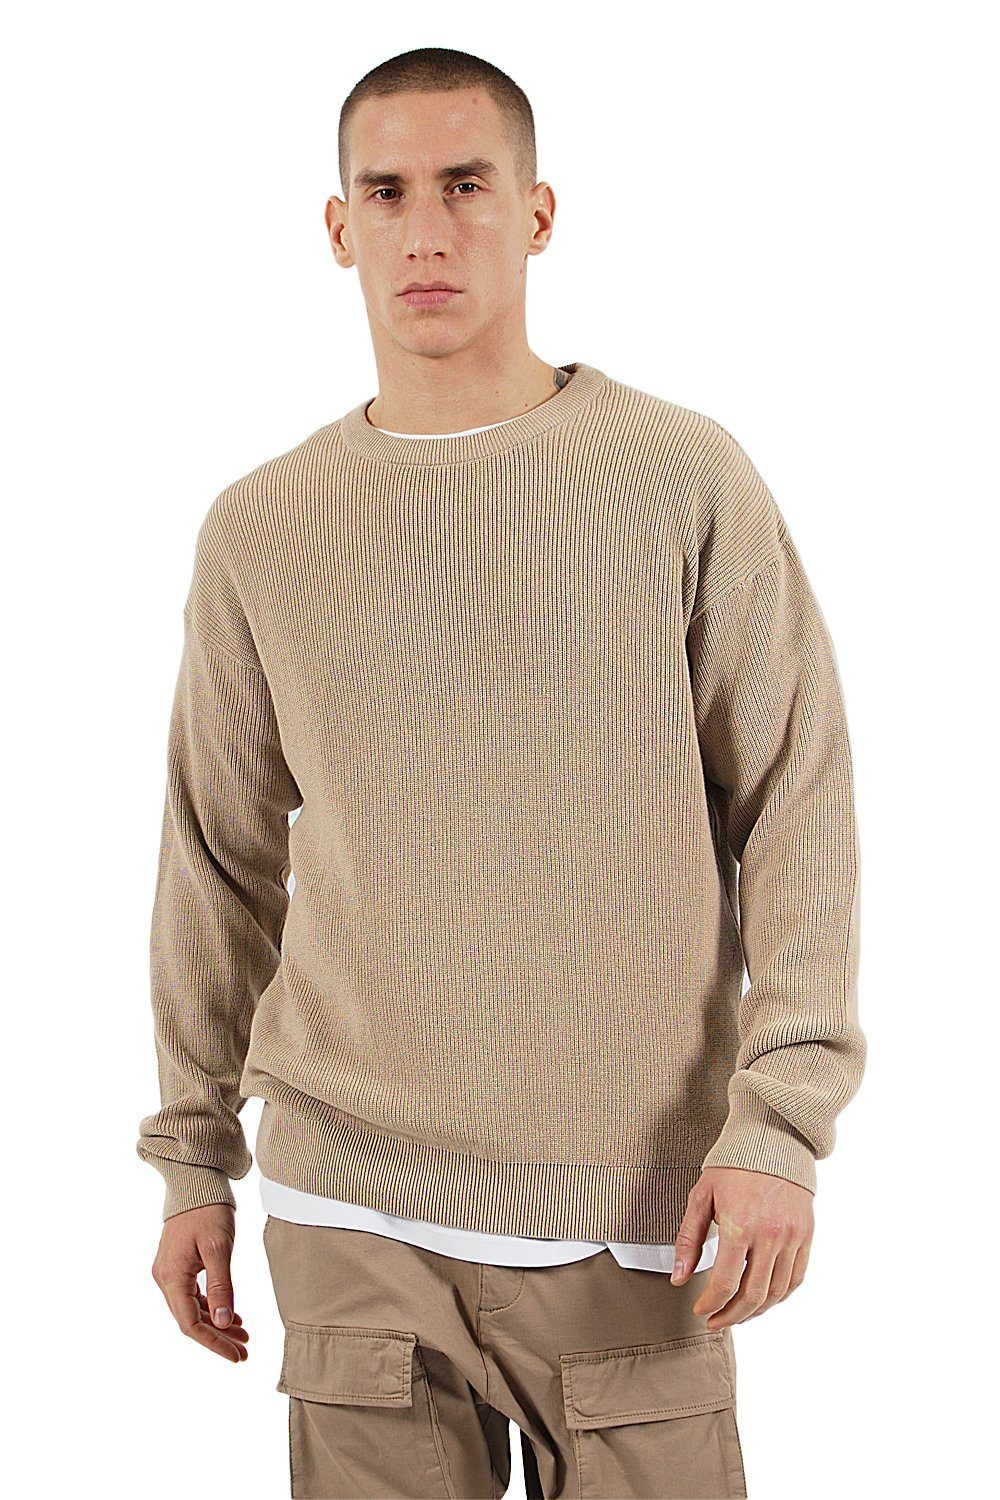 Milan Oversize Knit Sweater Beige - PEGADOR - Dominate the Hype